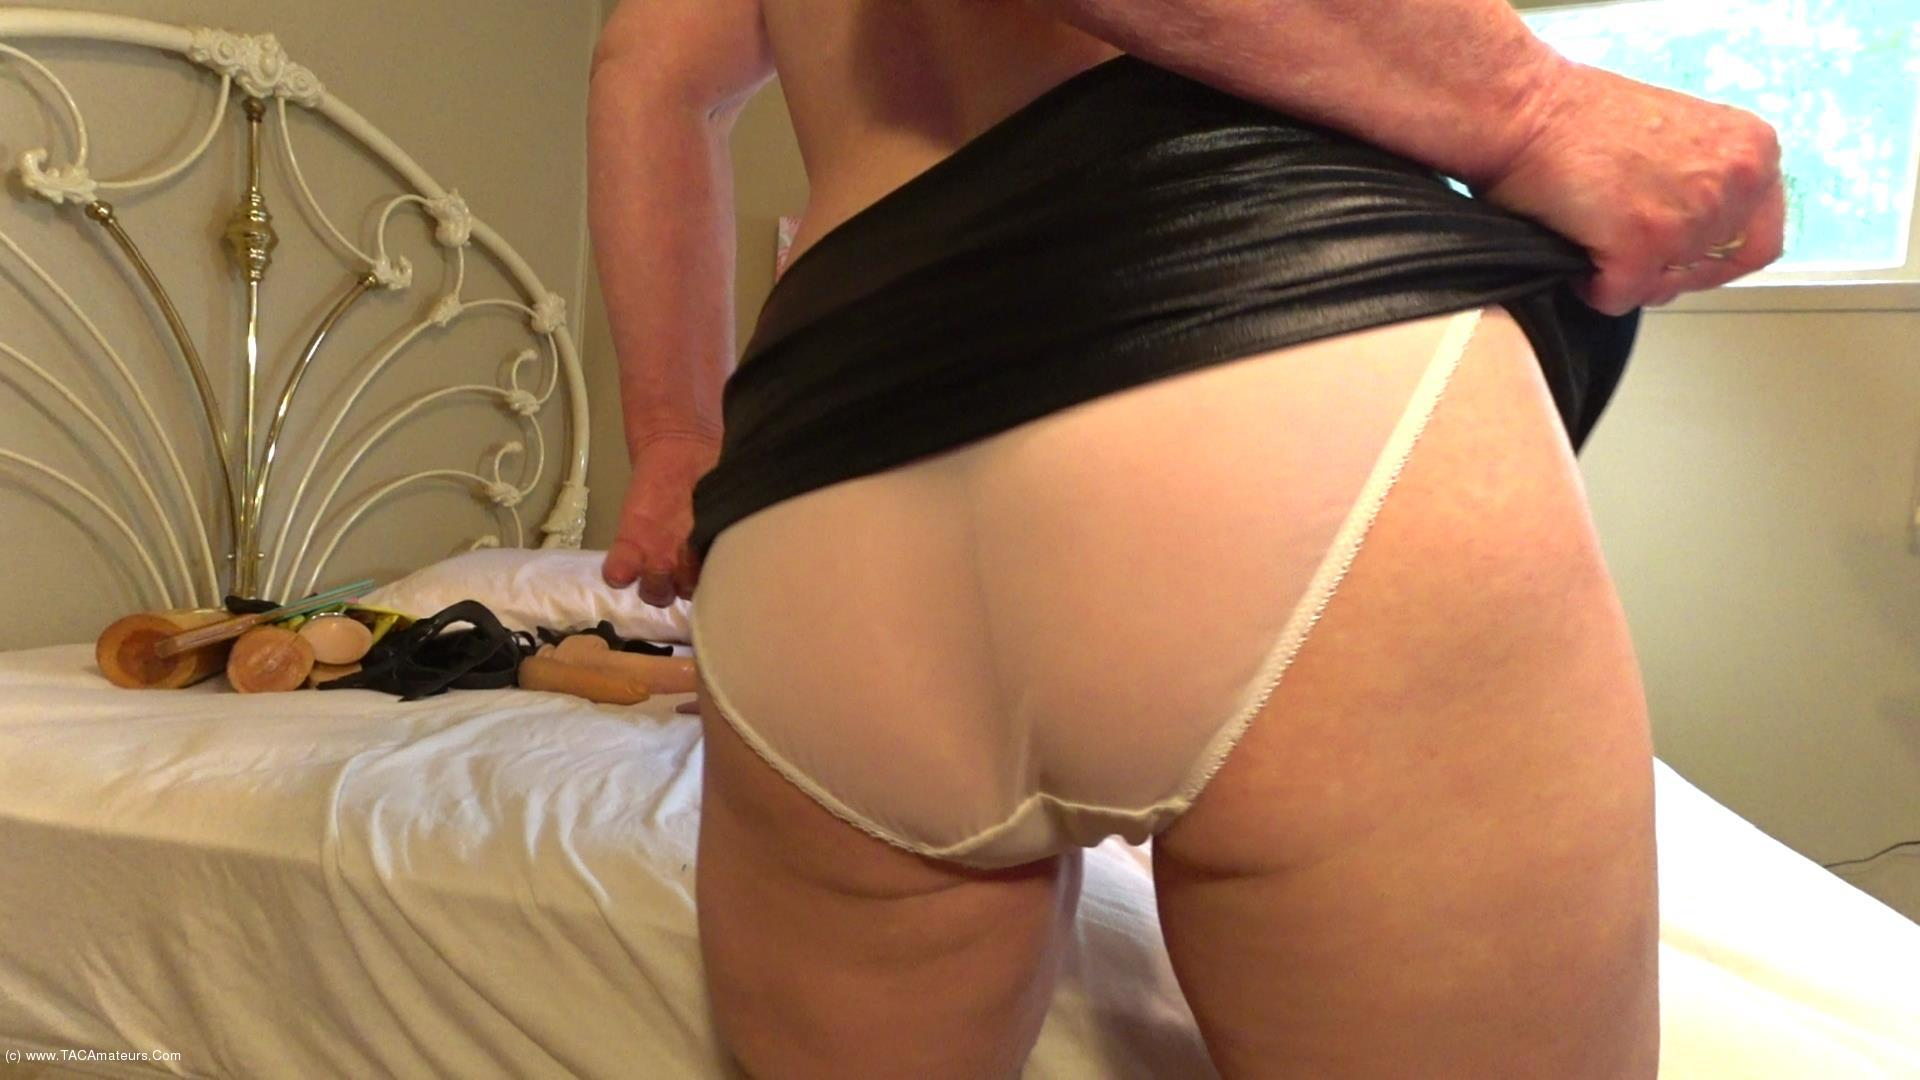 CougarBabeJolee - Worship My Hot Arse In PVC Mini & Transparent Panties scene 1